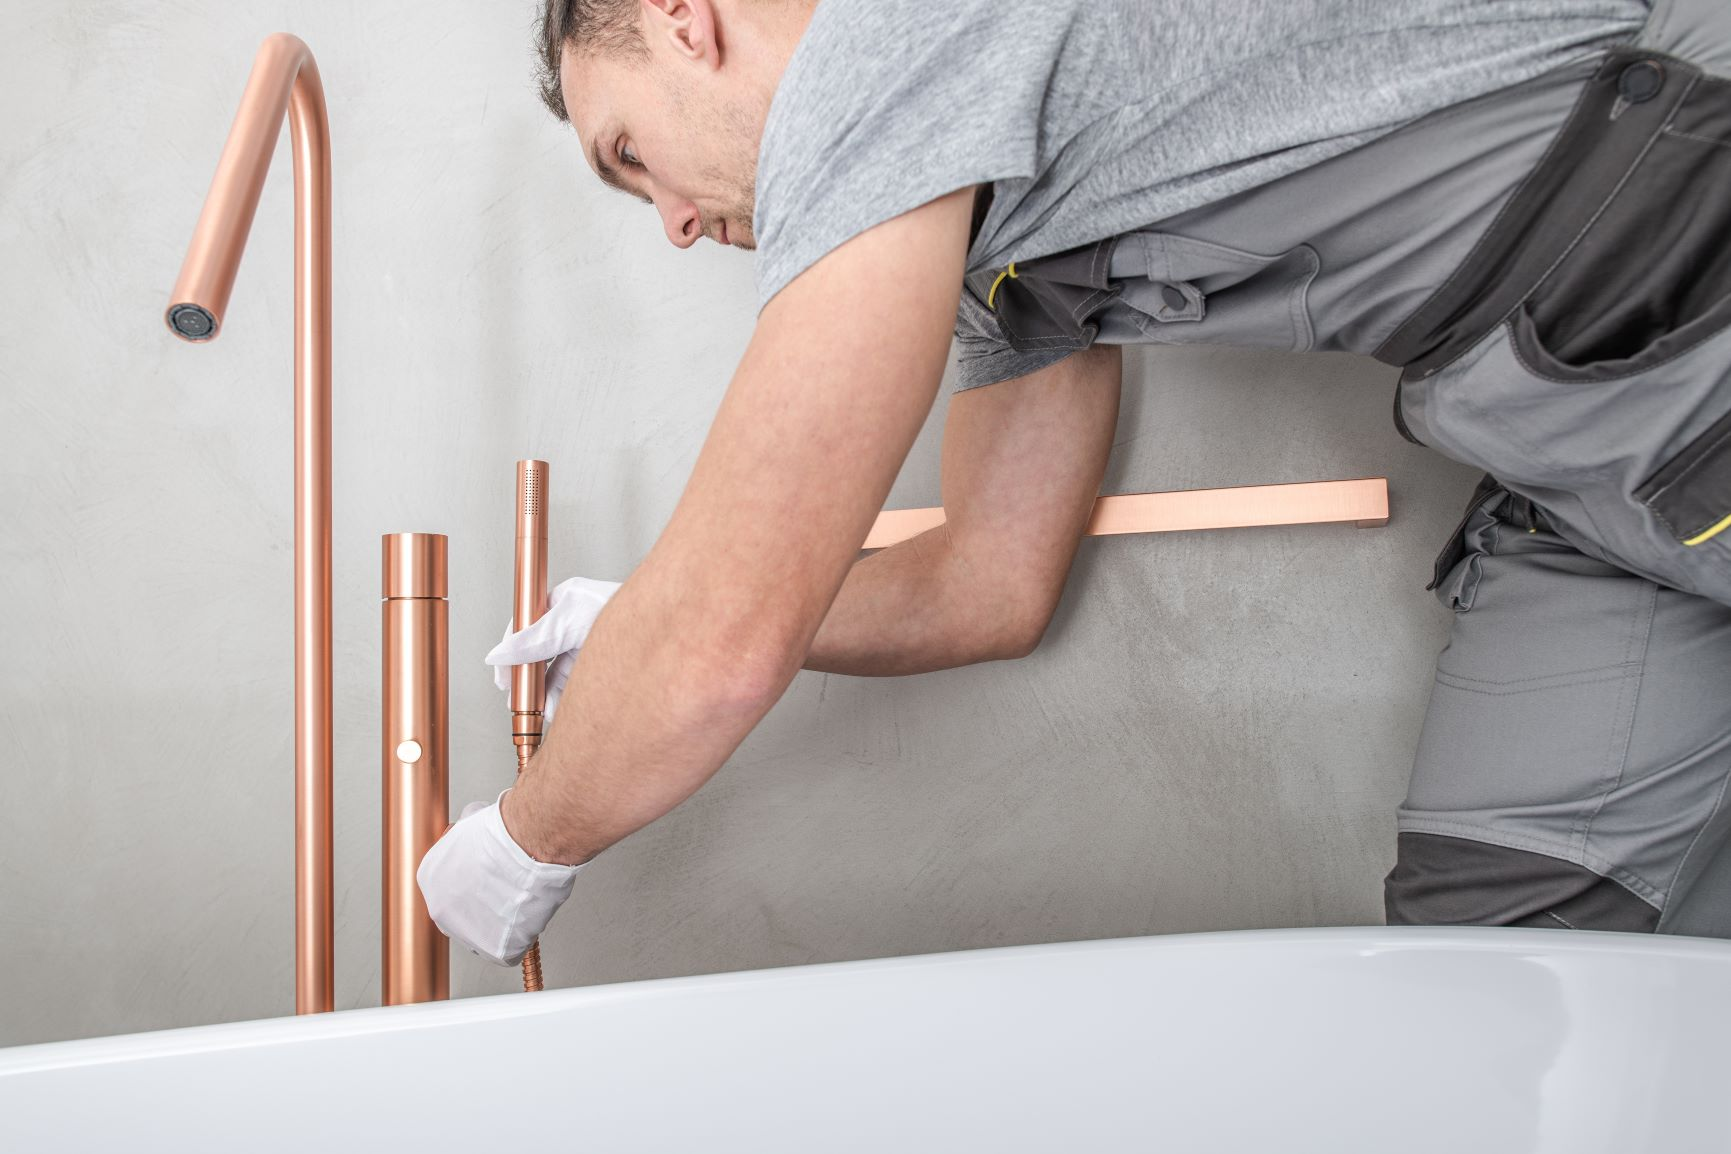 Plumbing Systems: Understanding The Pipes